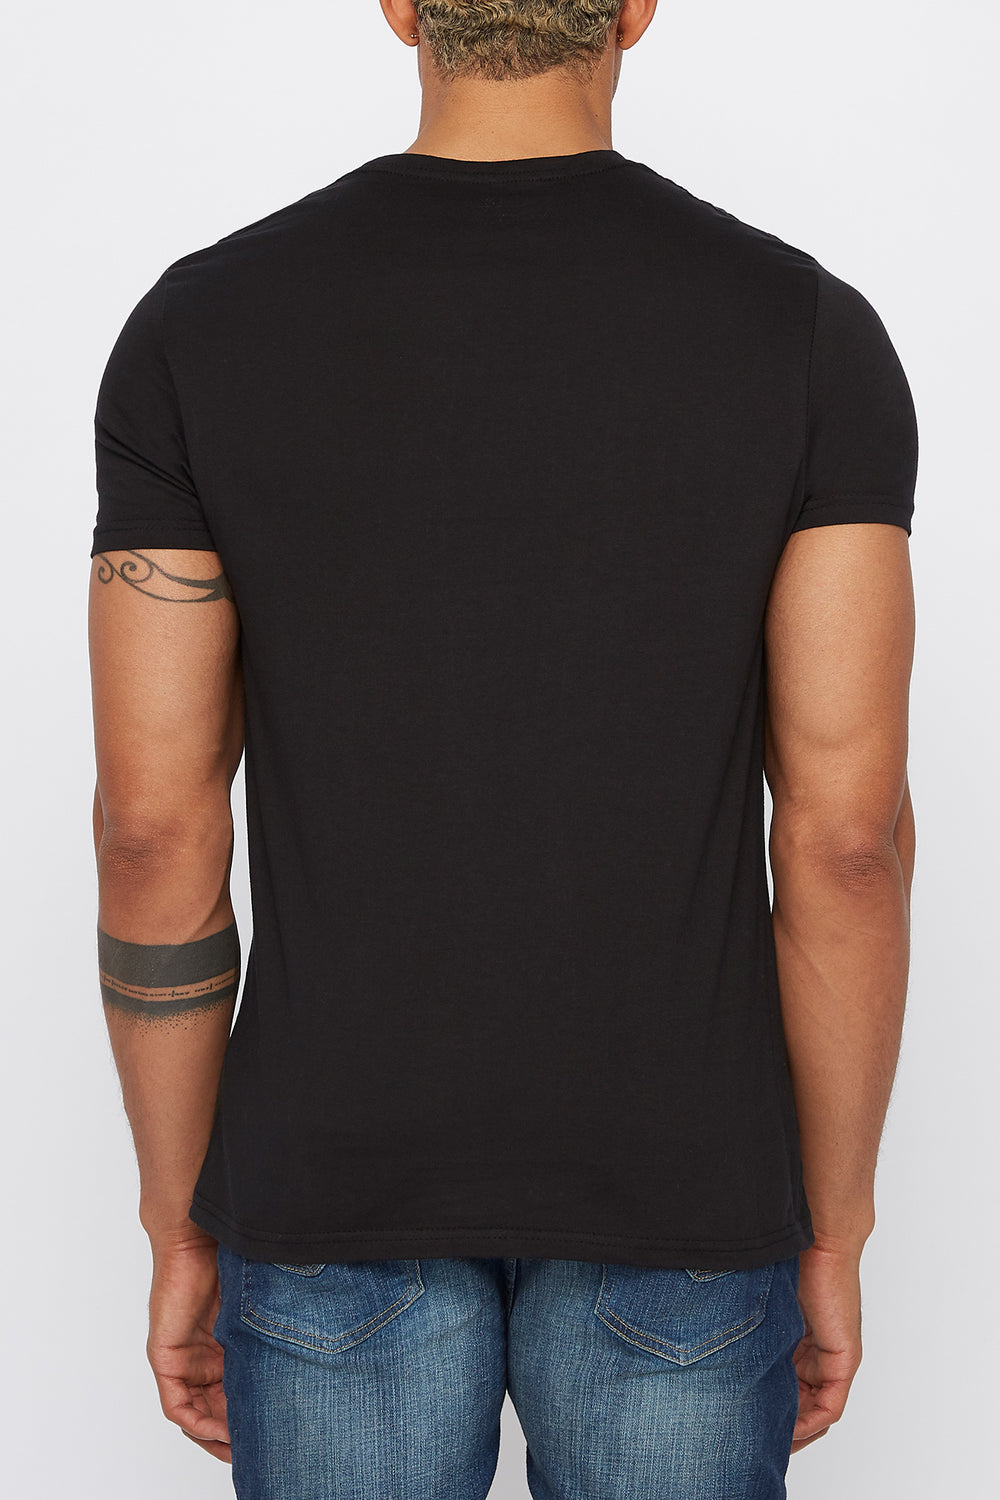 West49 Mens Box Logo T-Shirt Black